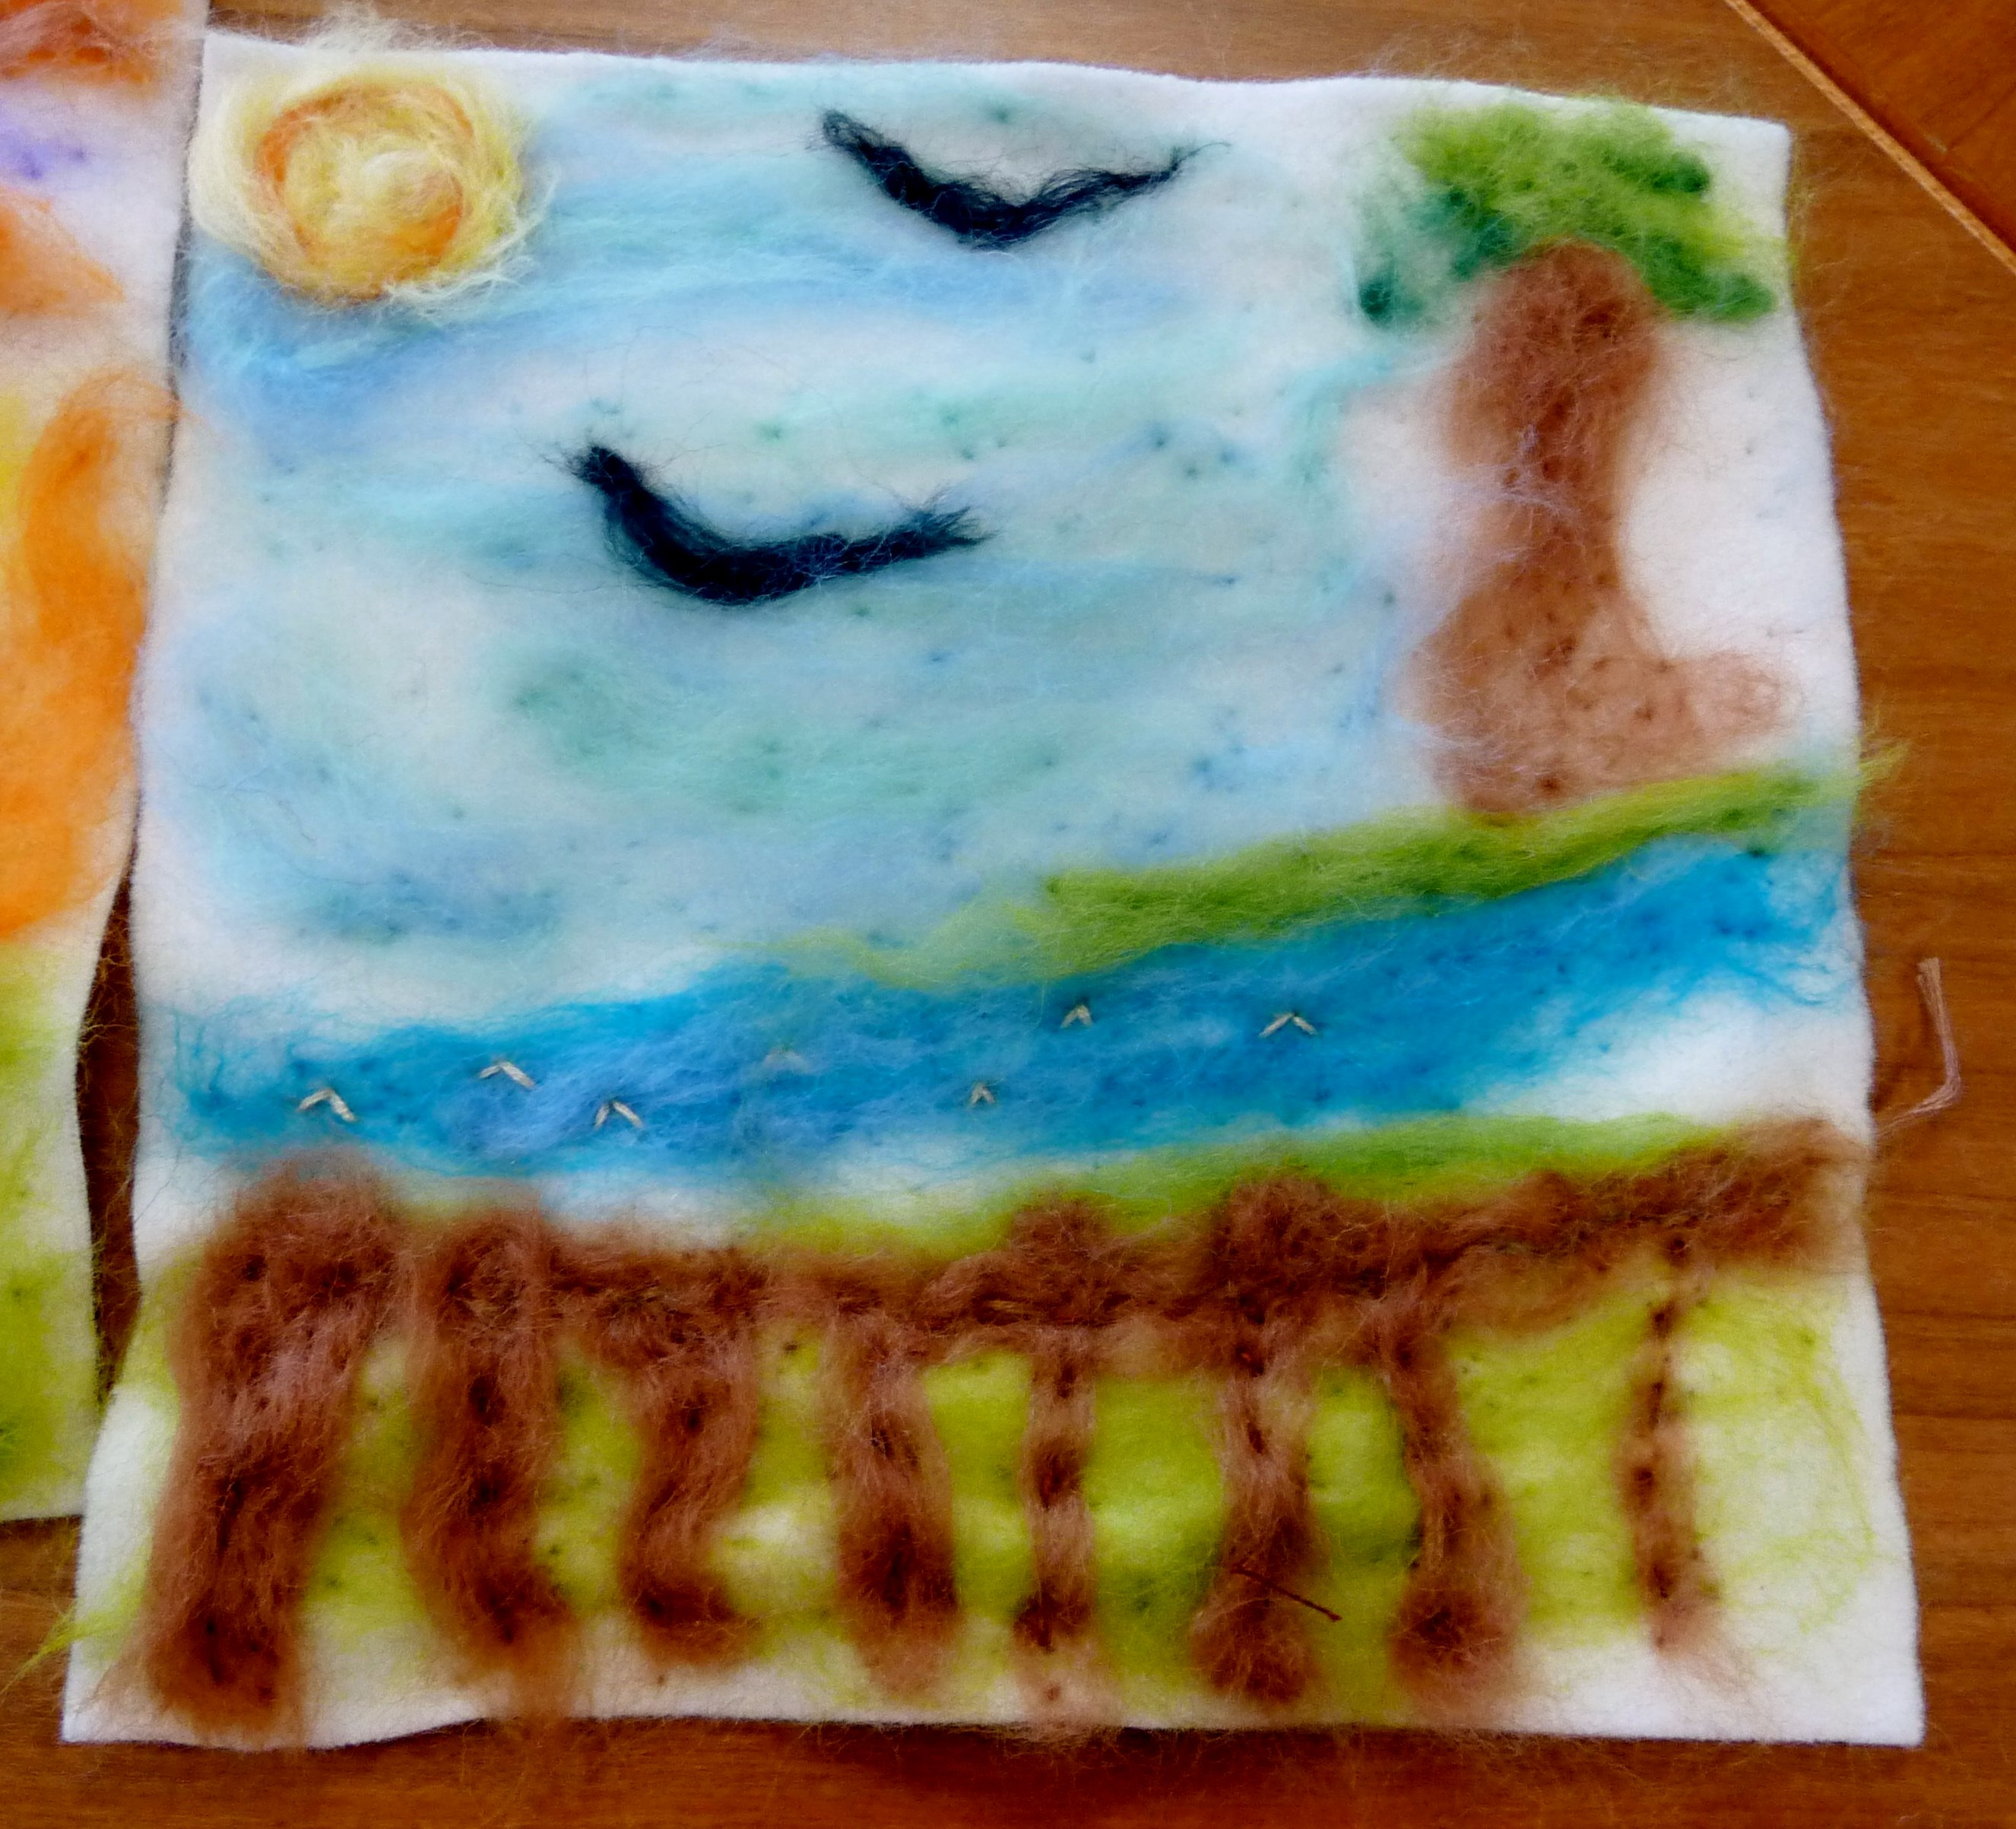 YE group May 2015. This is Zoe U's completed needlefelted seascape